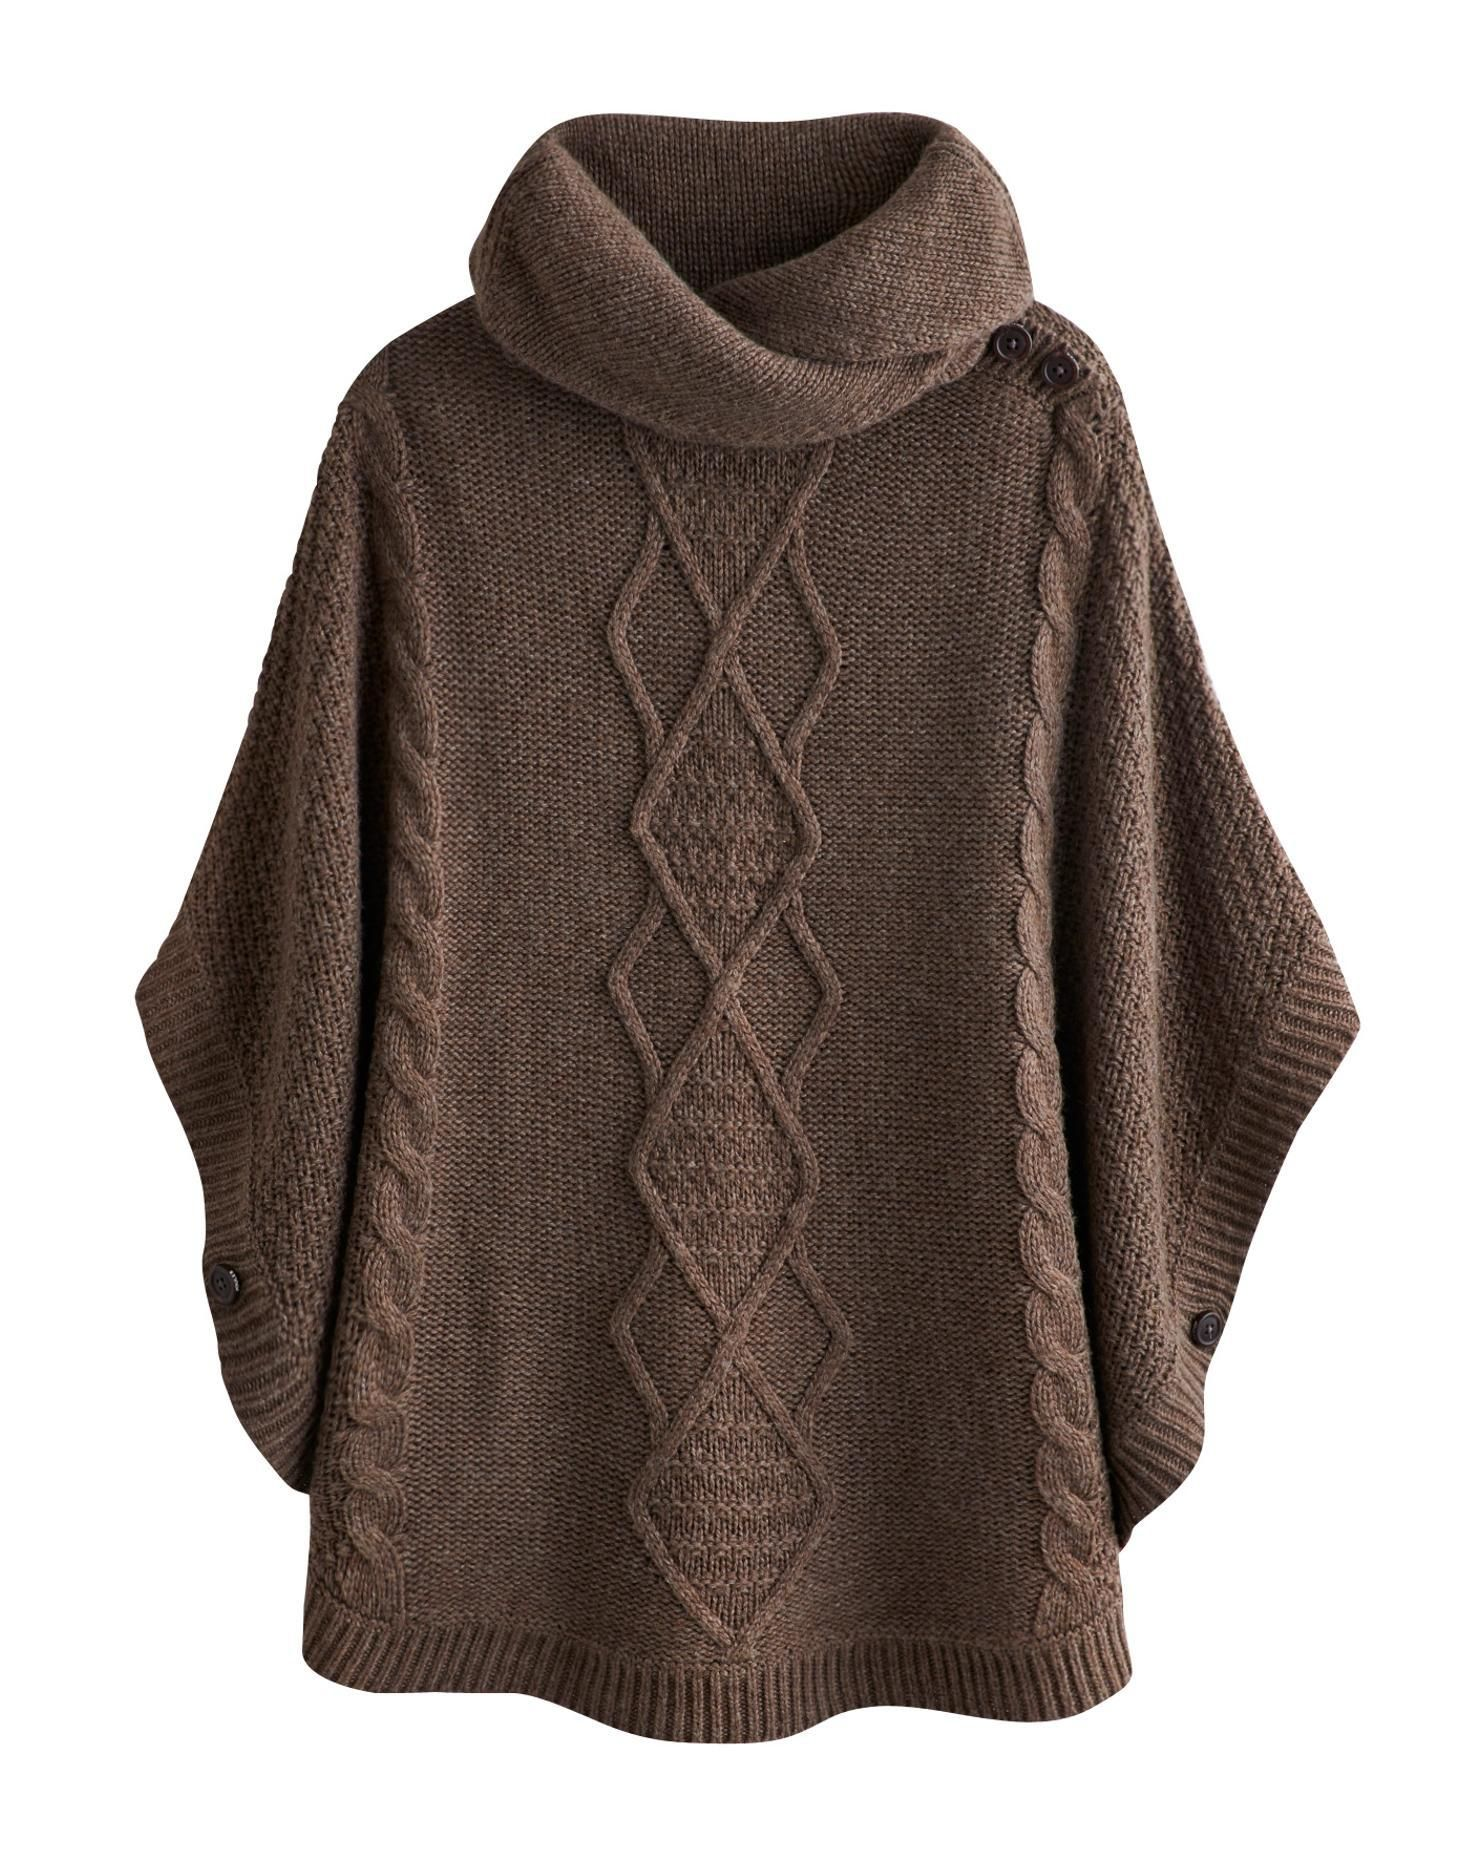 Brown Marl Tess Womens Knitted Poncho | Joules UK | Knitting ...